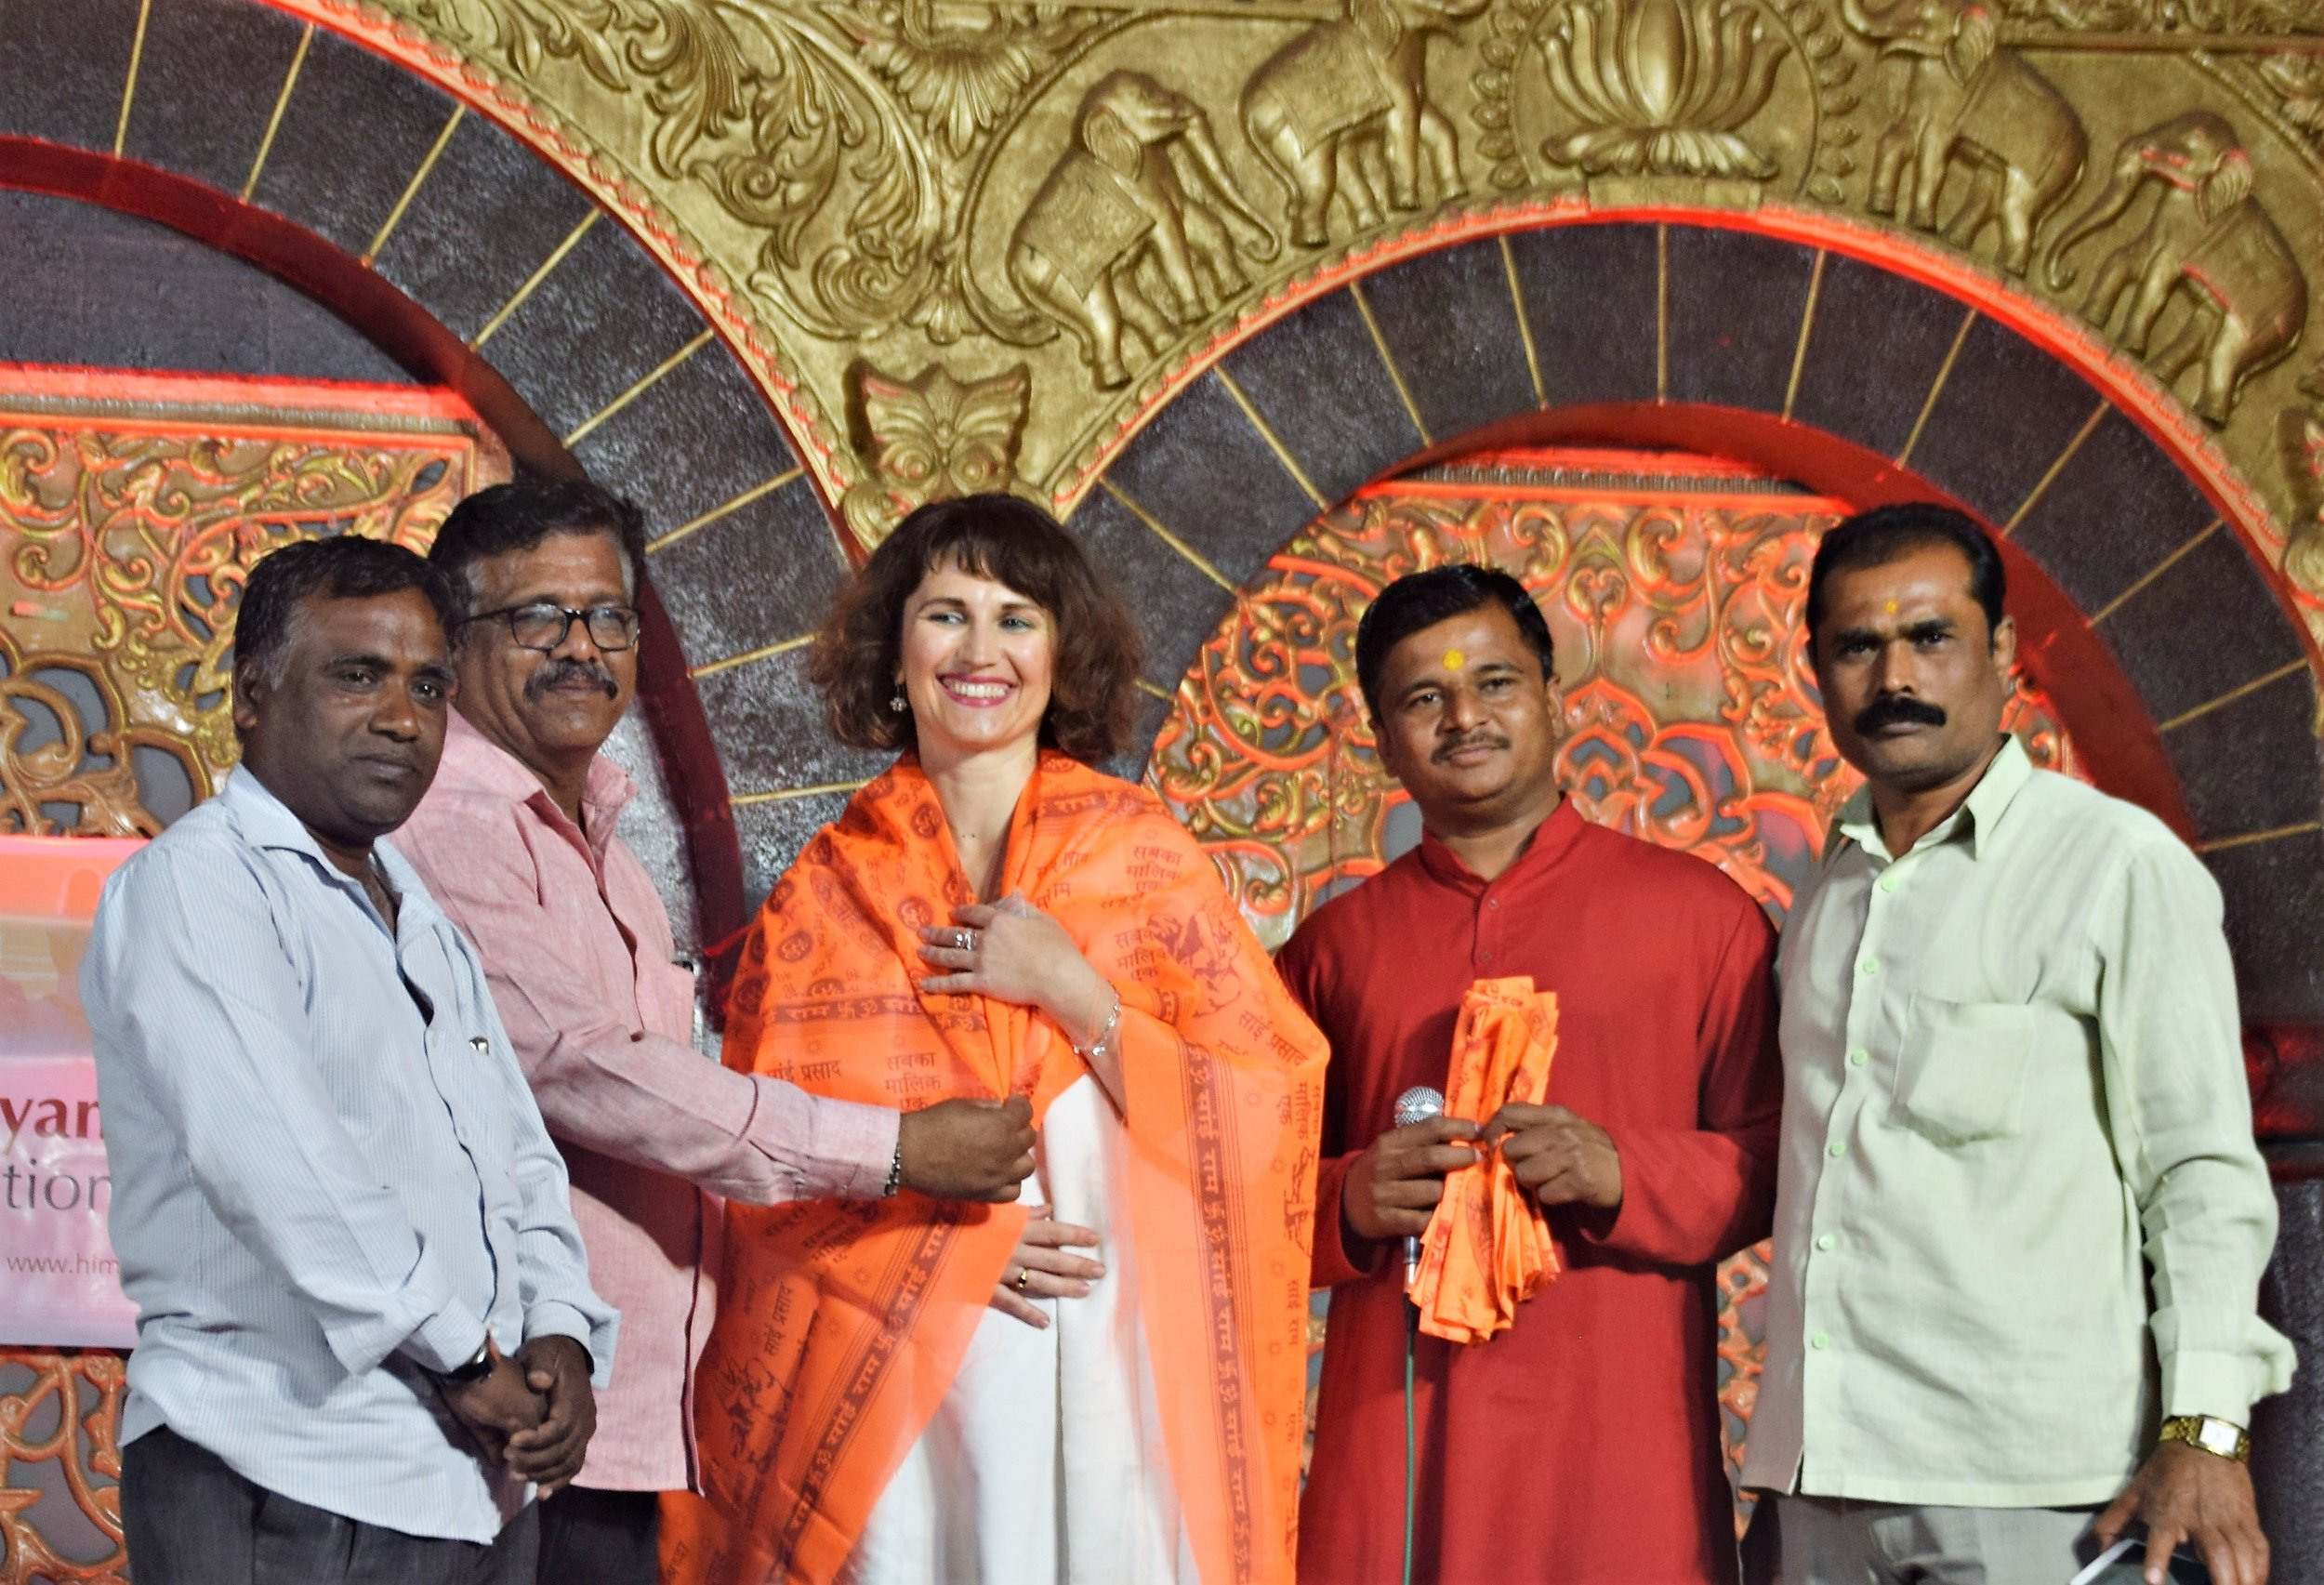 Devi honored on stage.jpg